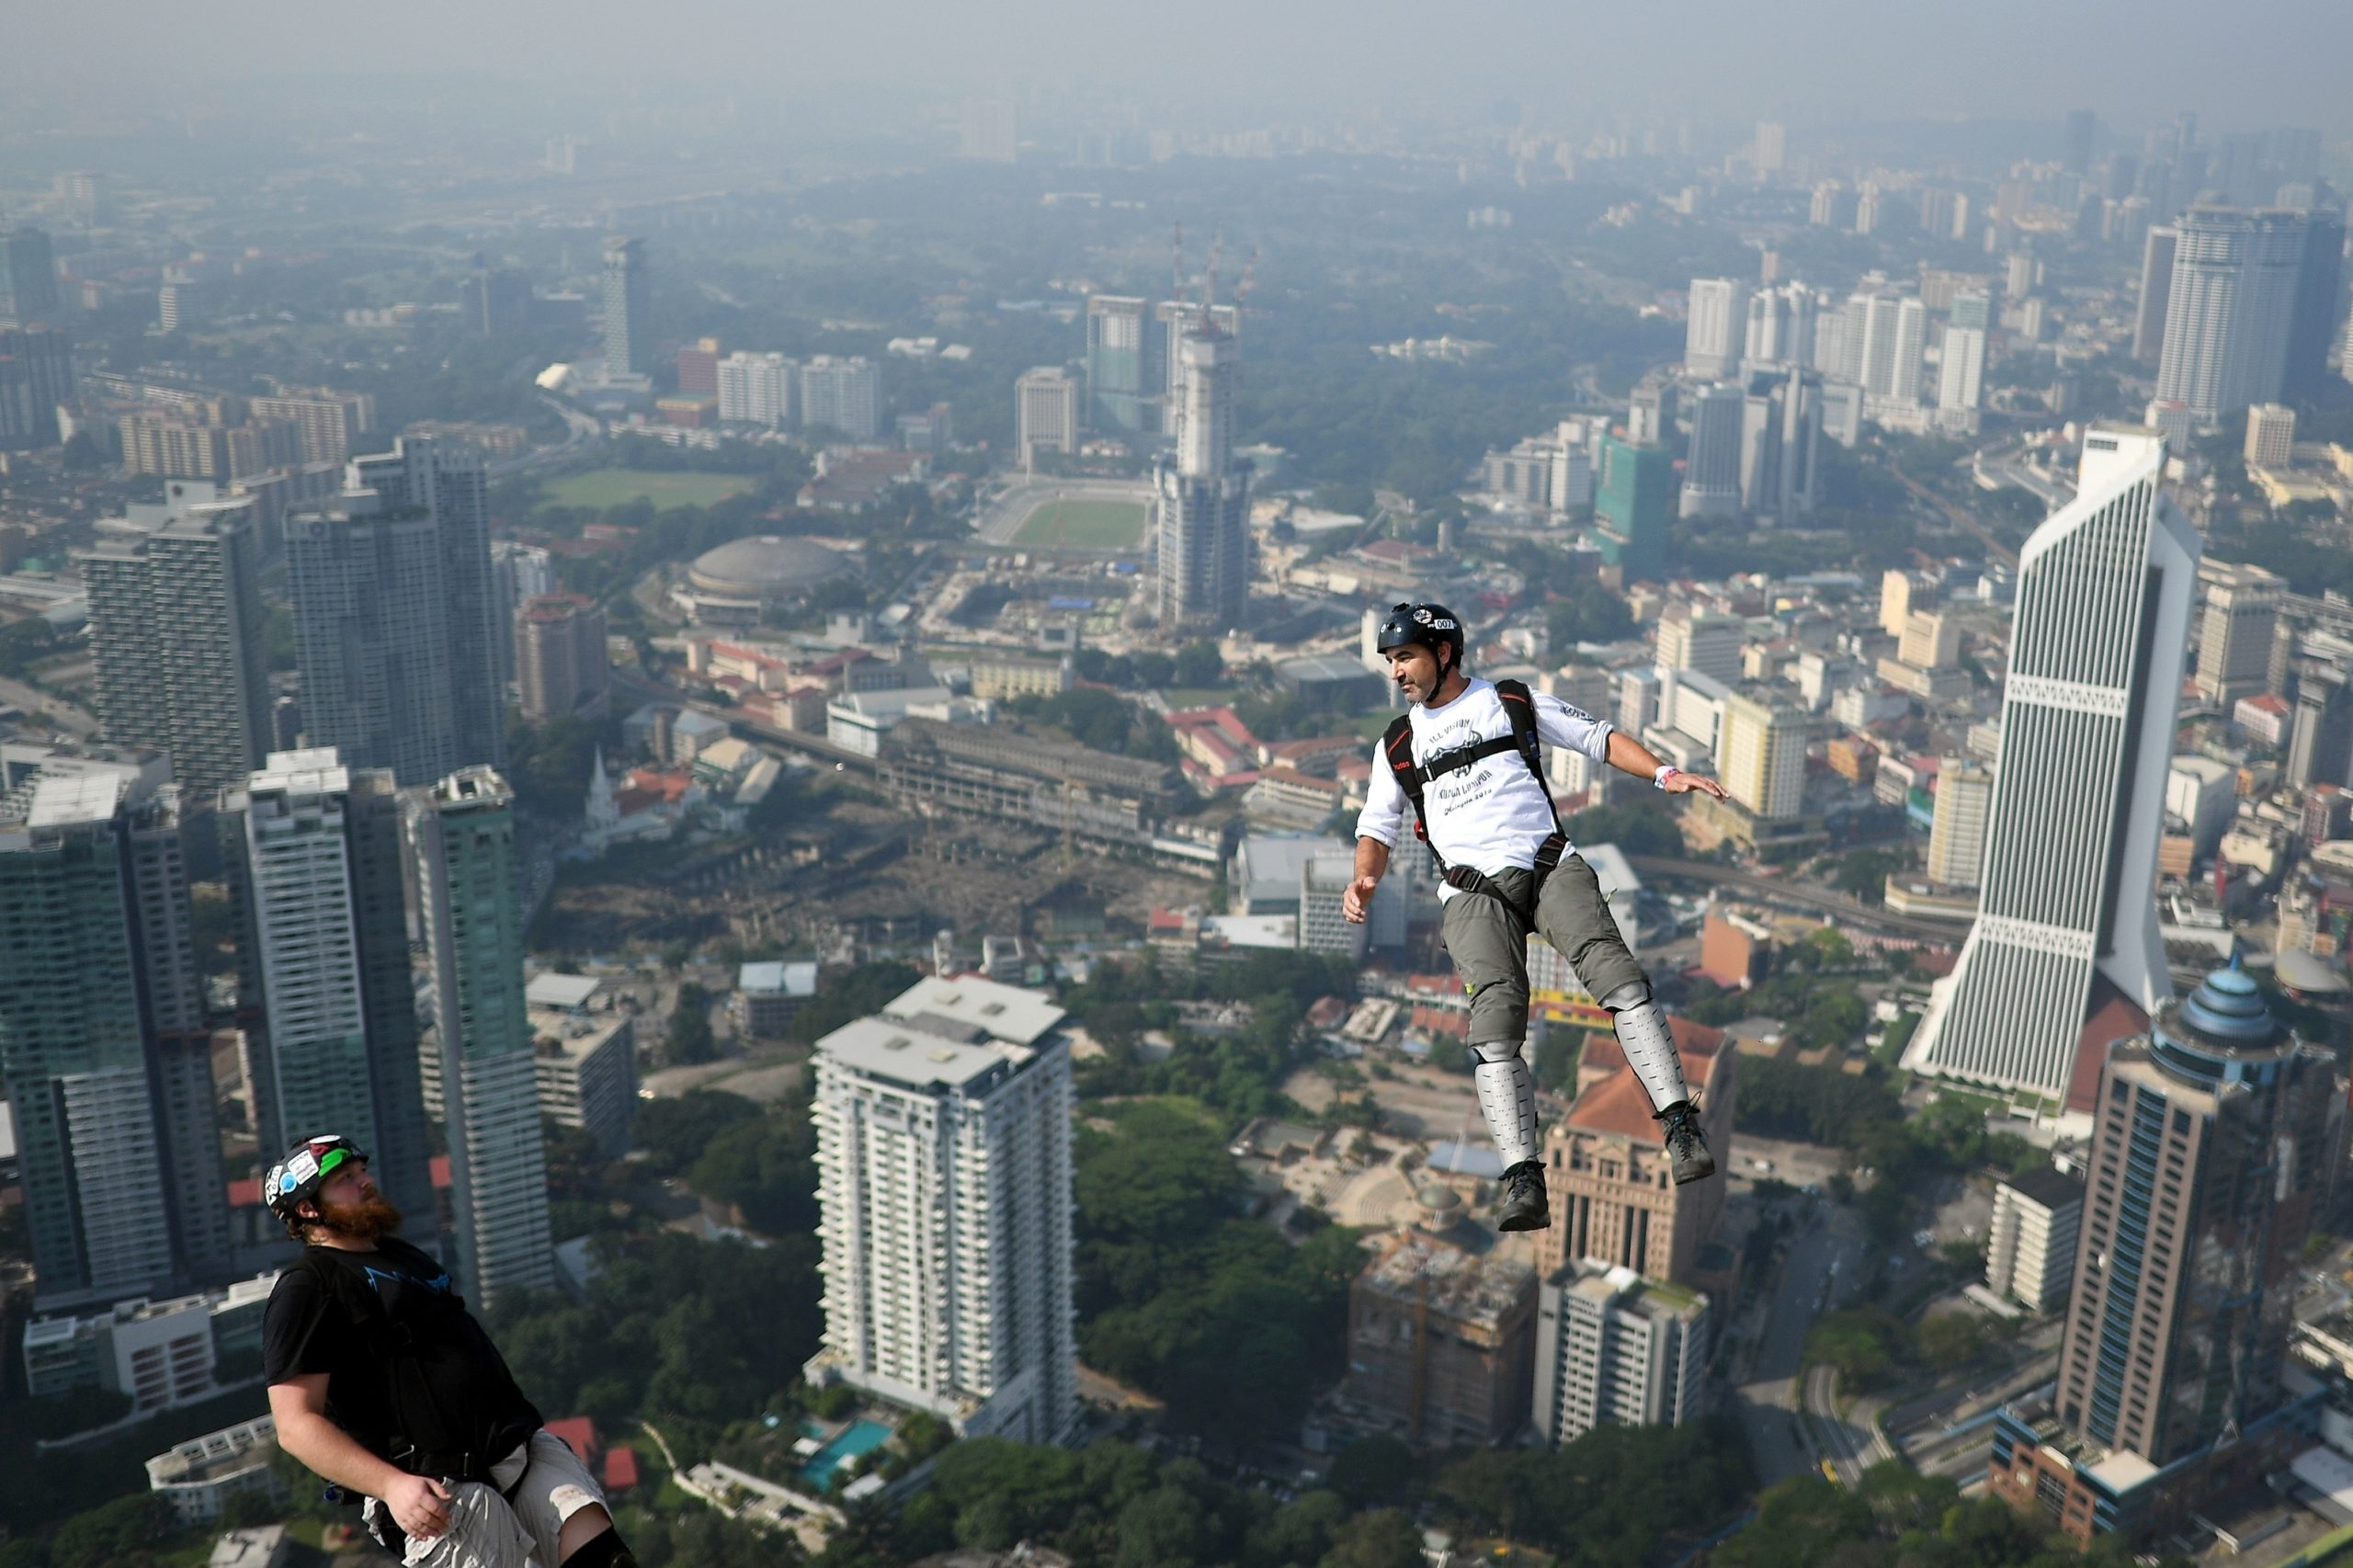 Base jumpers leap from the 300-metre high skydeck of Malaysia's landmark Kuala Lumpur Tower against the backdrop of the city's skyline in Kuala Lumpur on September 30, 2018 during the annual International KL Tower Base-Jump event. (Photo by Manan VATSYAYANA / AFP) (Photo credit should read MANAN VATSYAYANA/AFP via Getty Images)